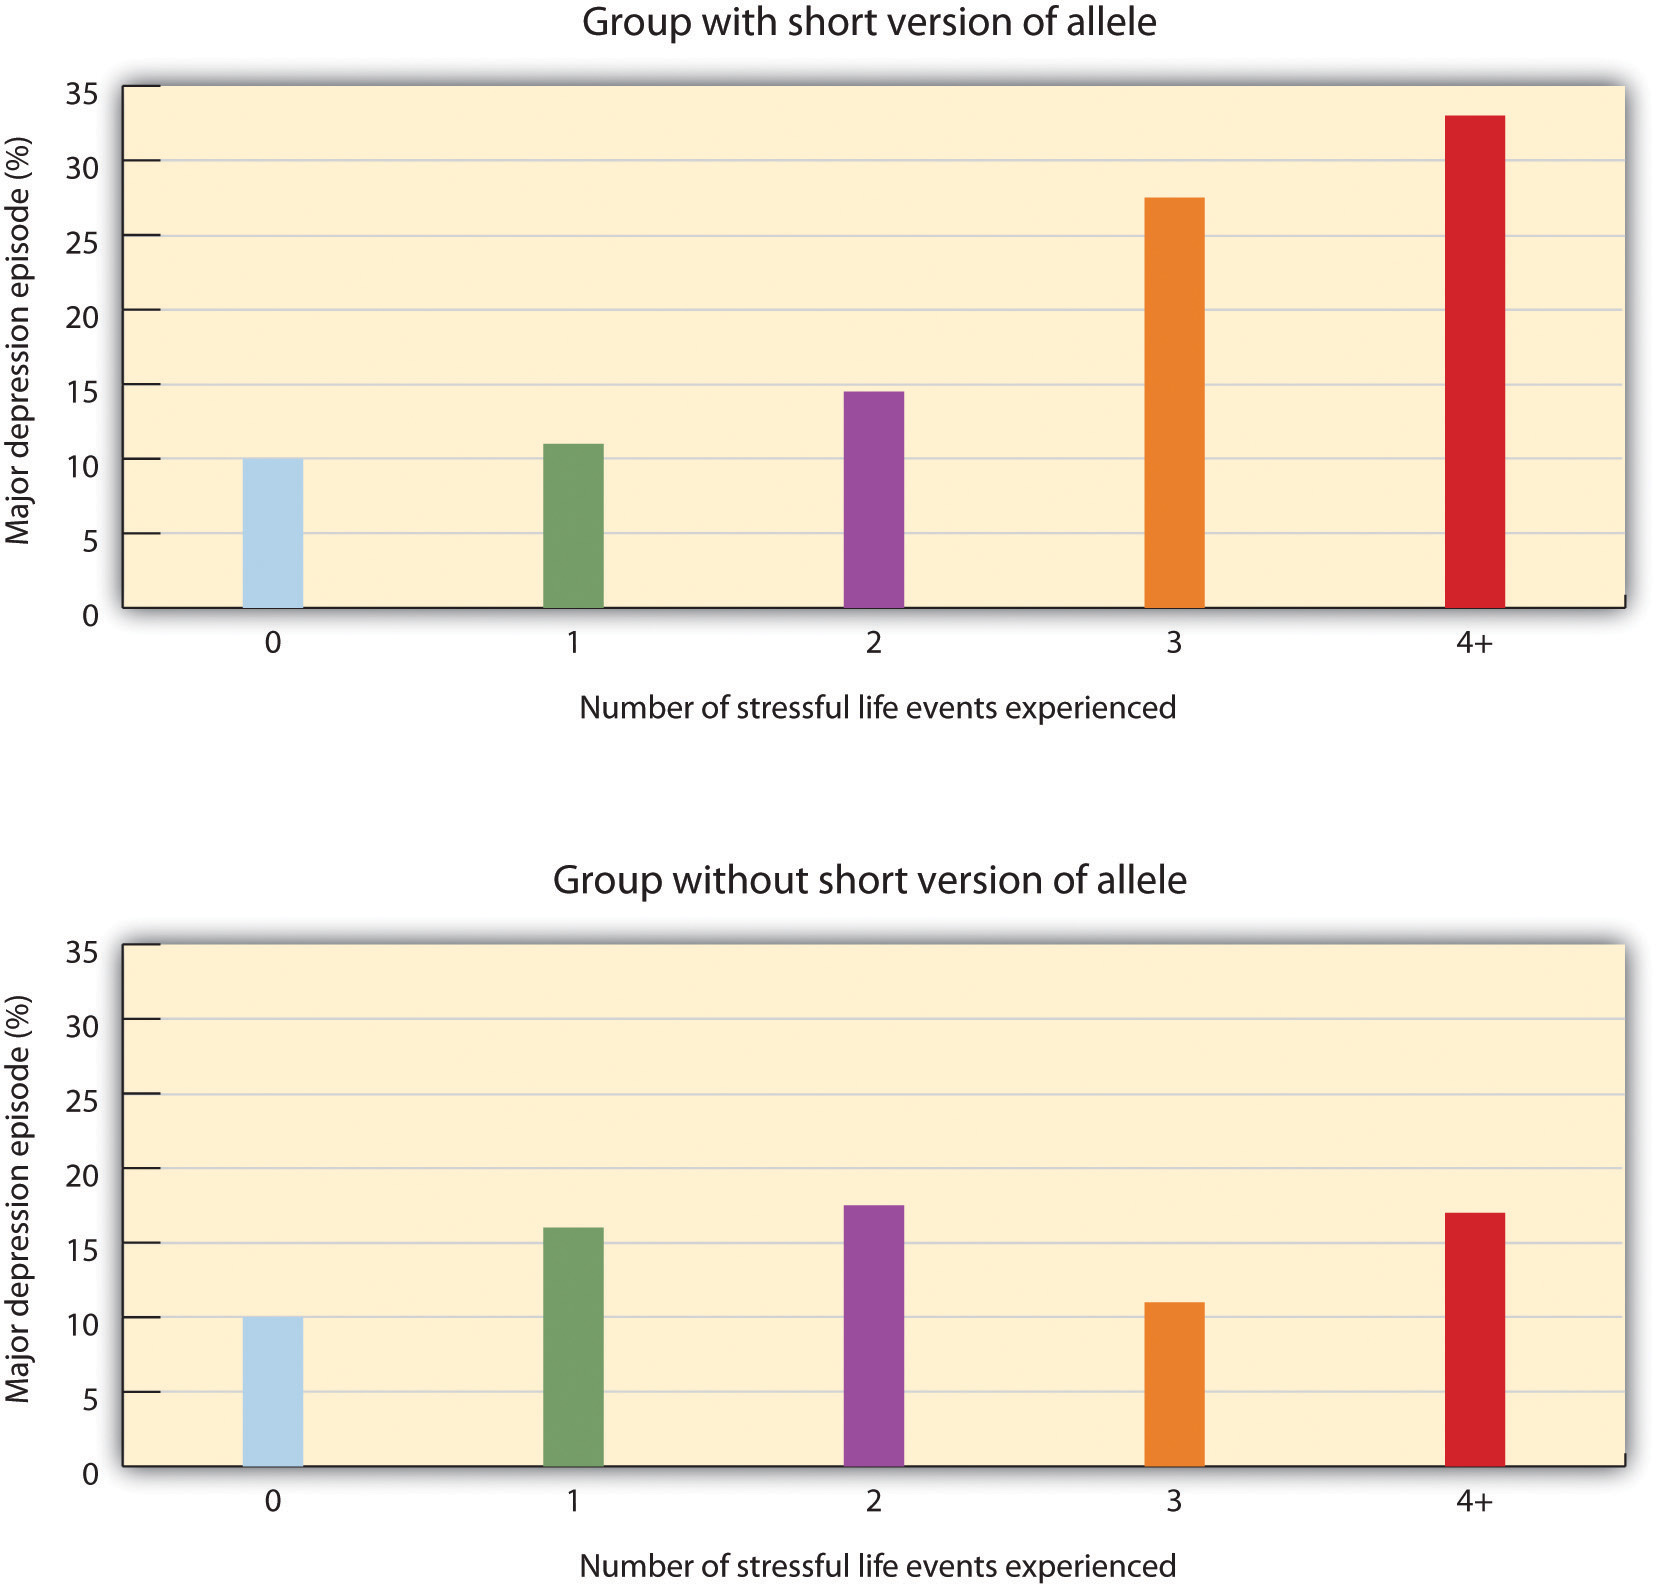 These two charts provide results from Caspi et al. Long description available.